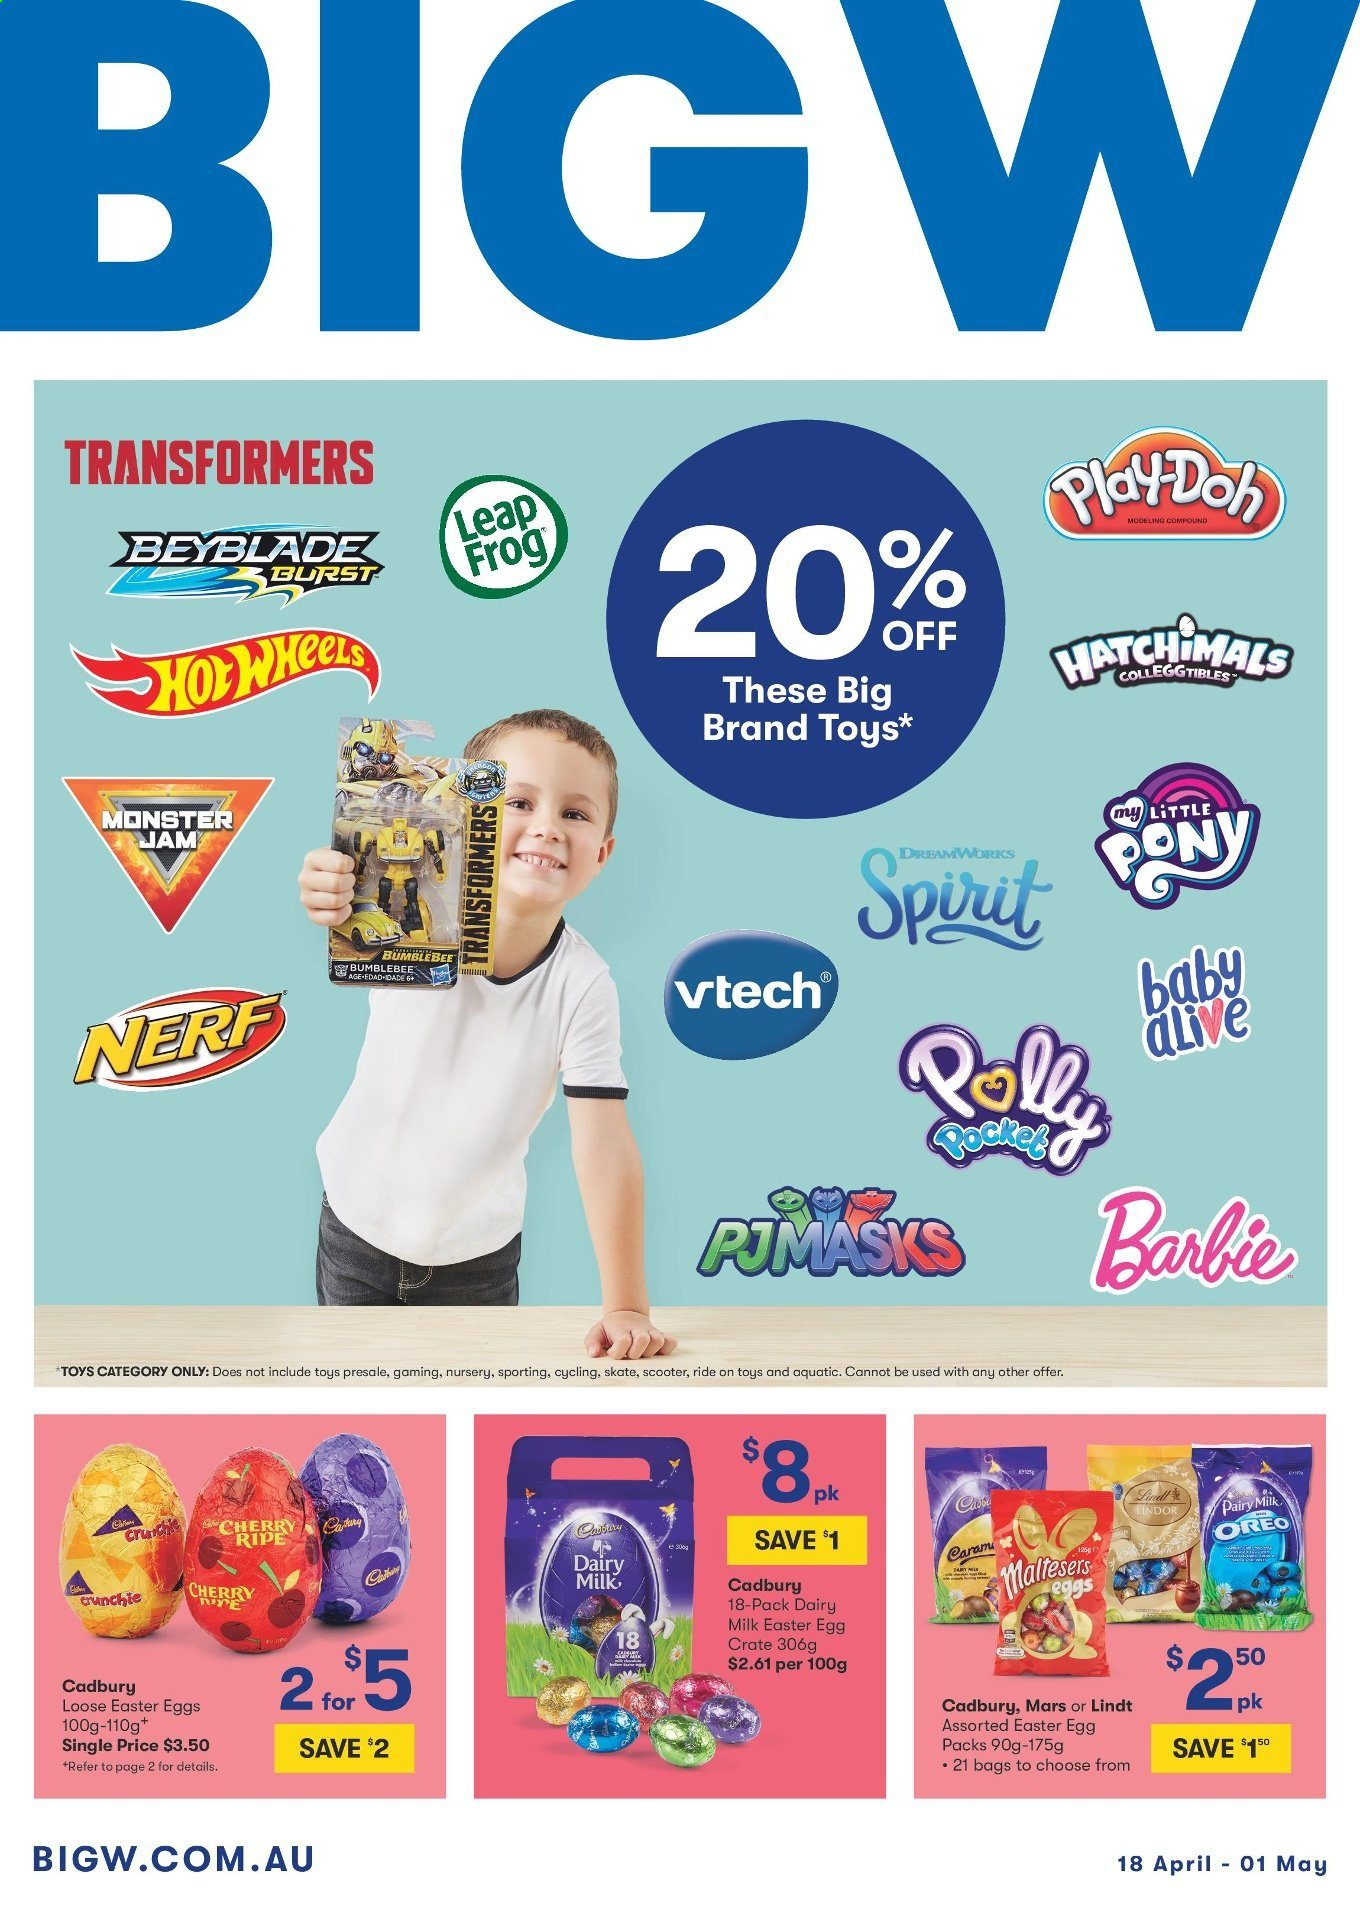 Big W Toys Catalogue Current Big W Catalogue 18 4 2019 1 5 2019 Au Catalogues